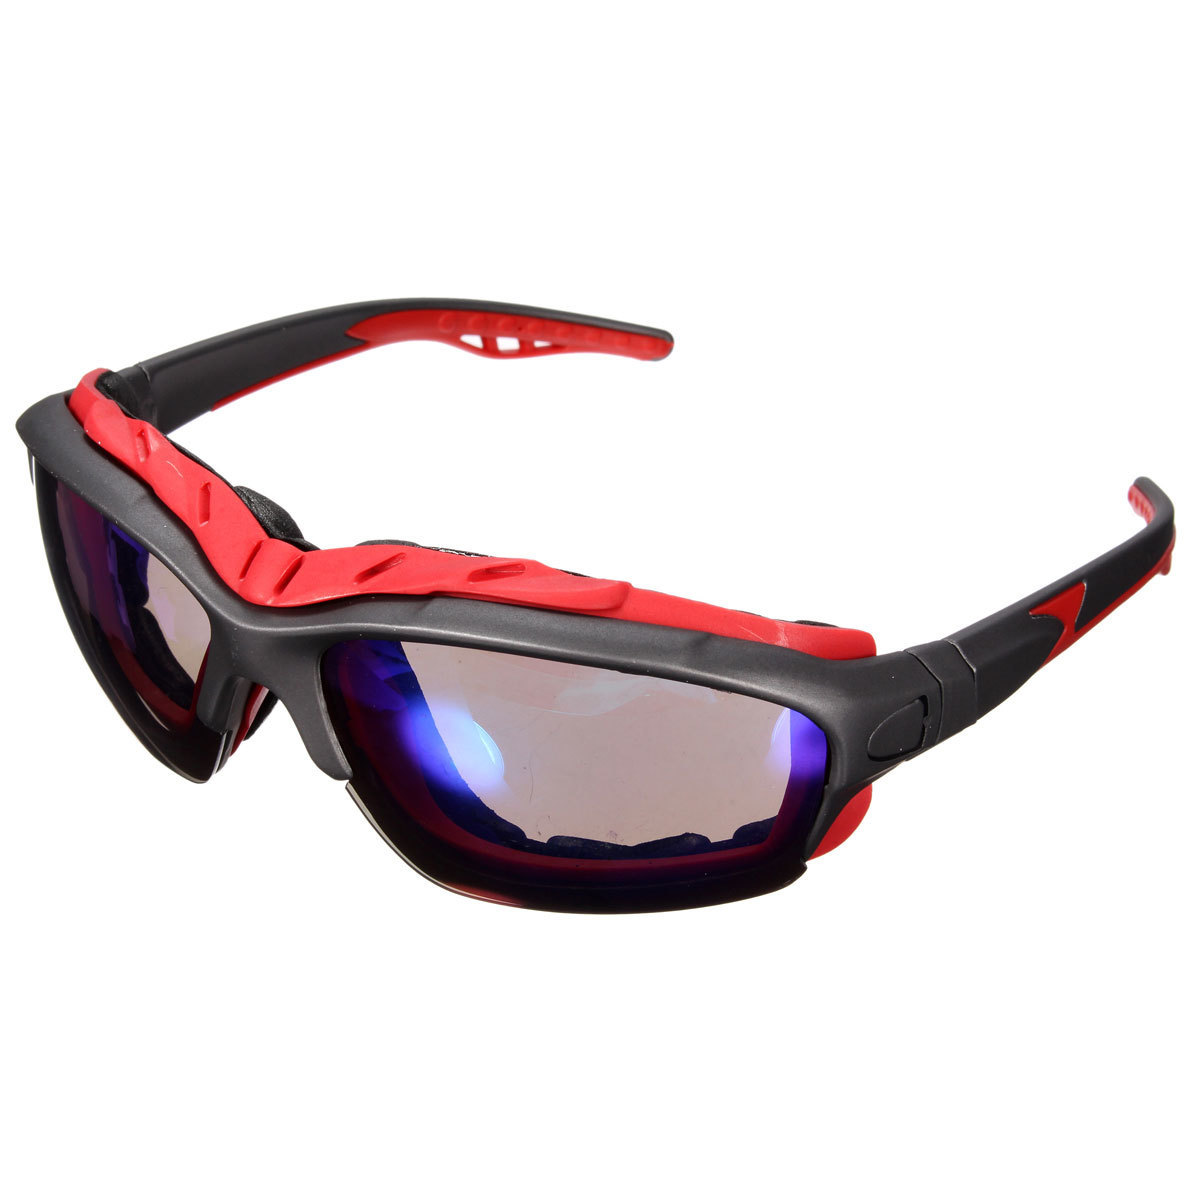 Outdoor Sports Cycling Bike Running Sunglasses Lens Goggle Glasses Eyewear